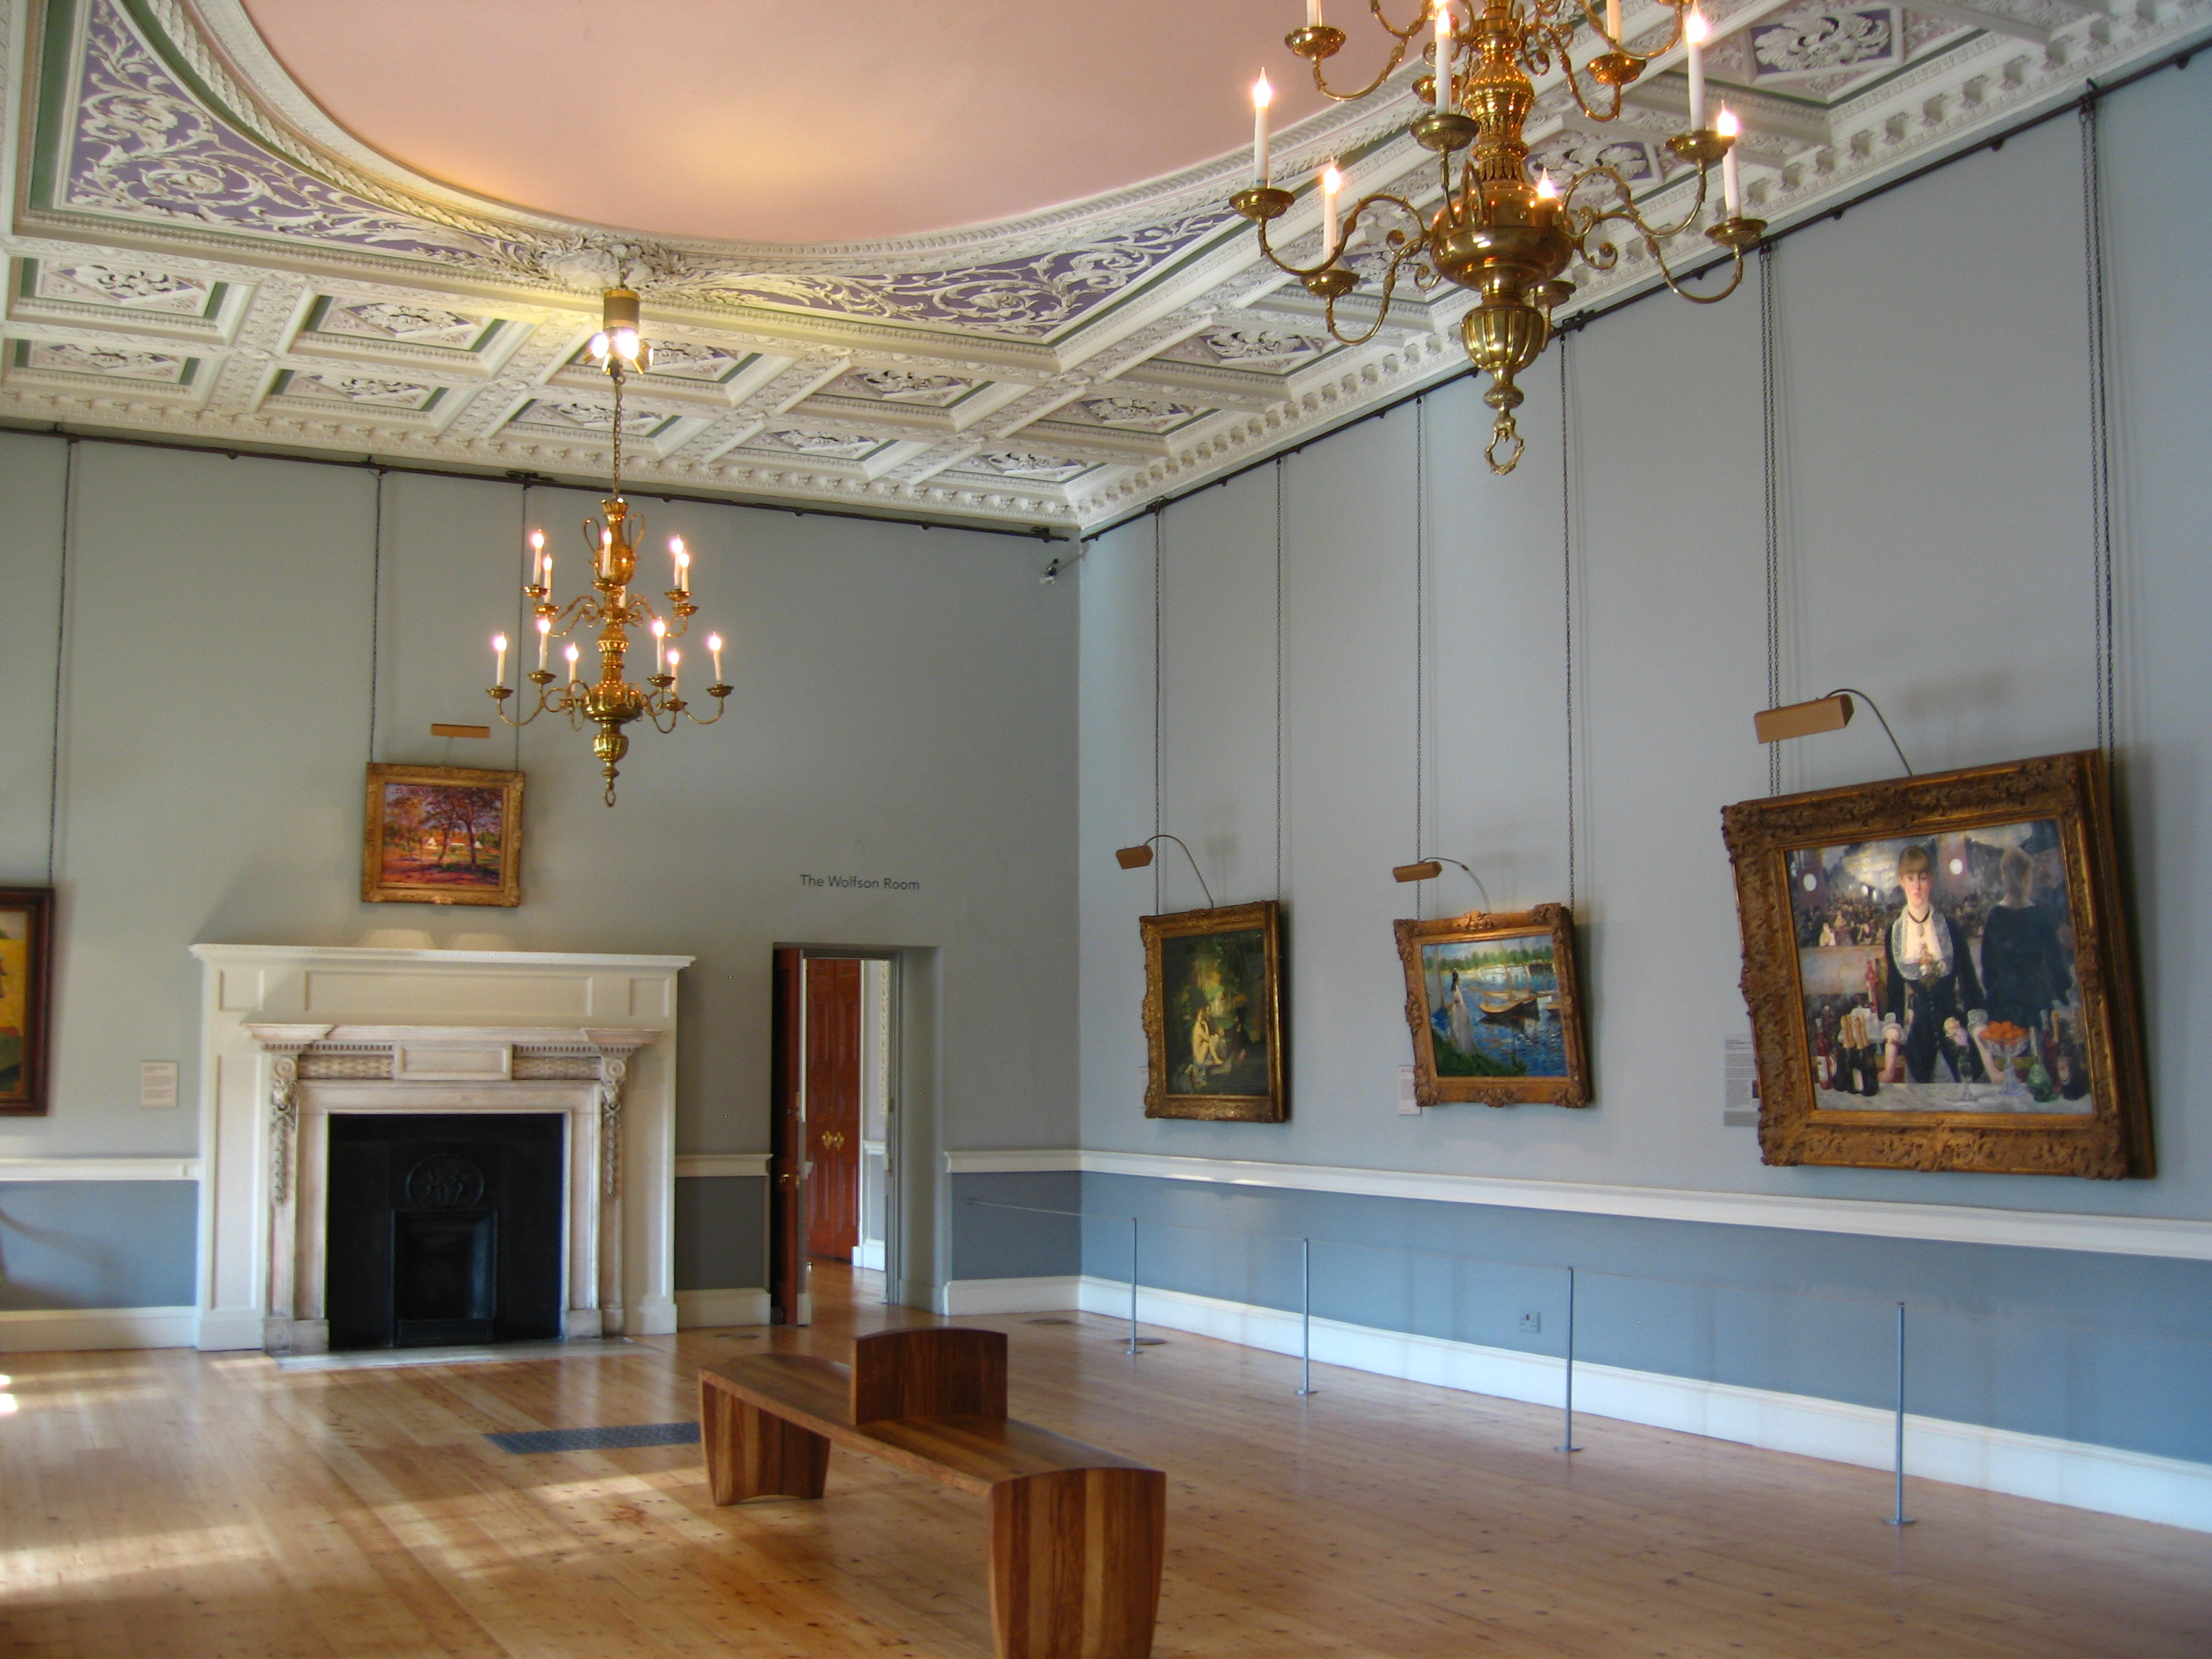 The Courtauld Gallery, London